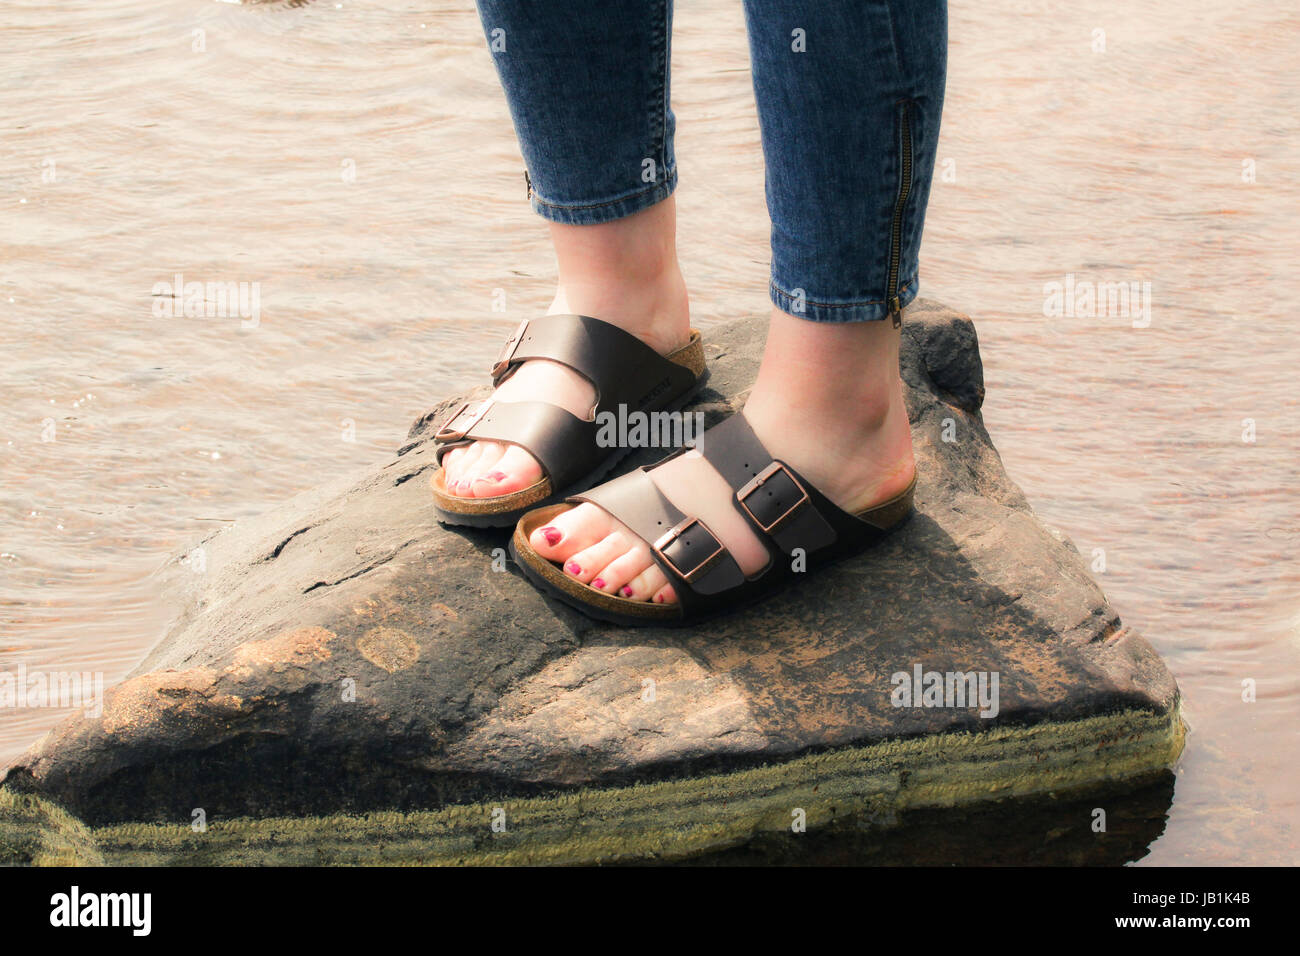 717ab5535a9 Birkenstock Stock Photos   Birkenstock Stock Images - Alamy